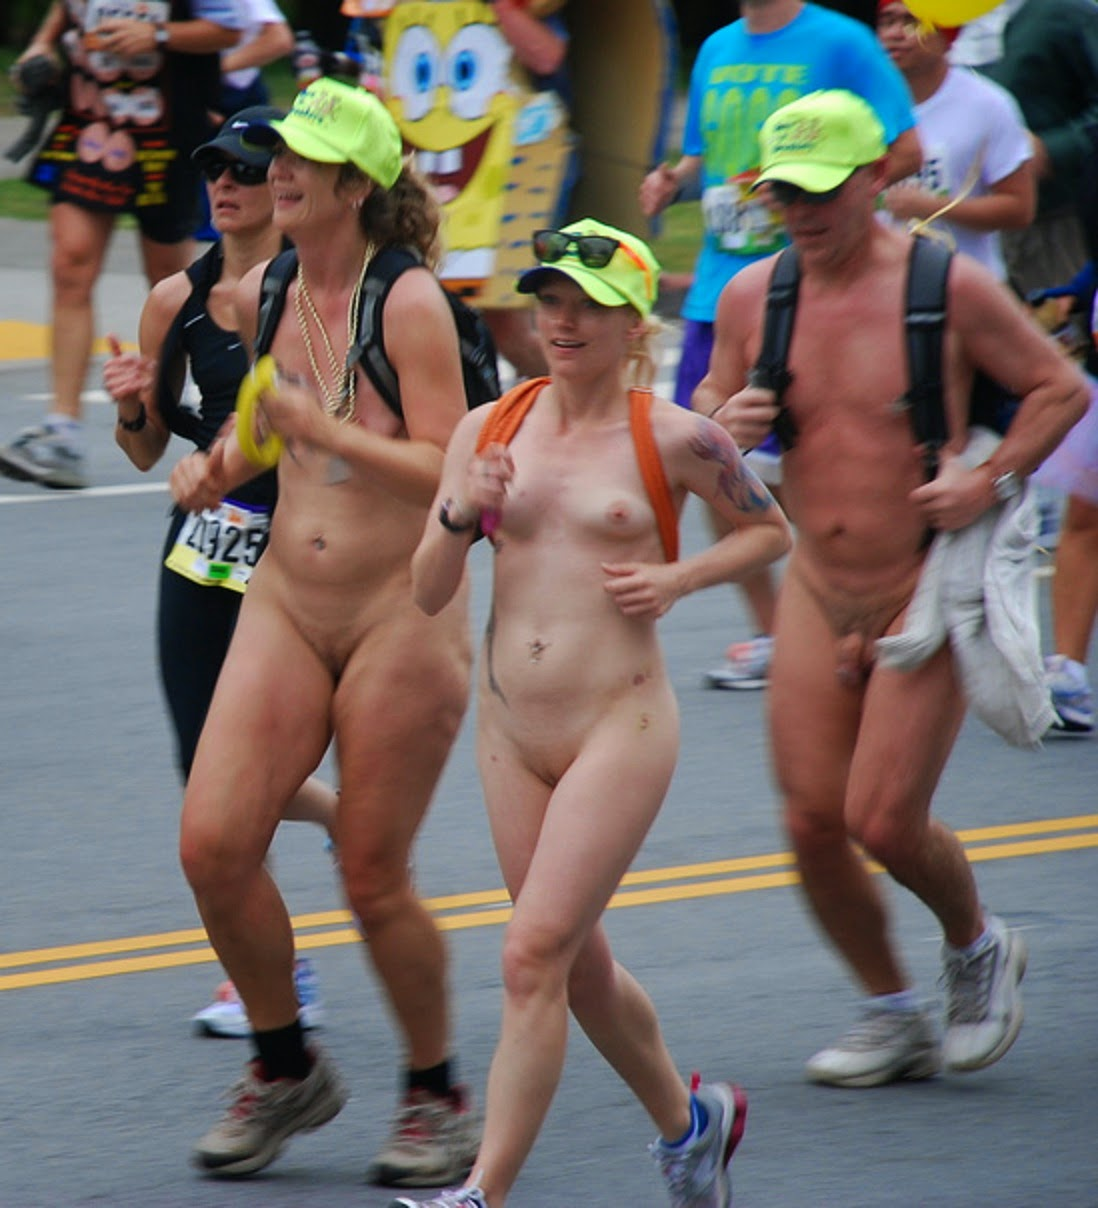 Naked bay to breakers 2015